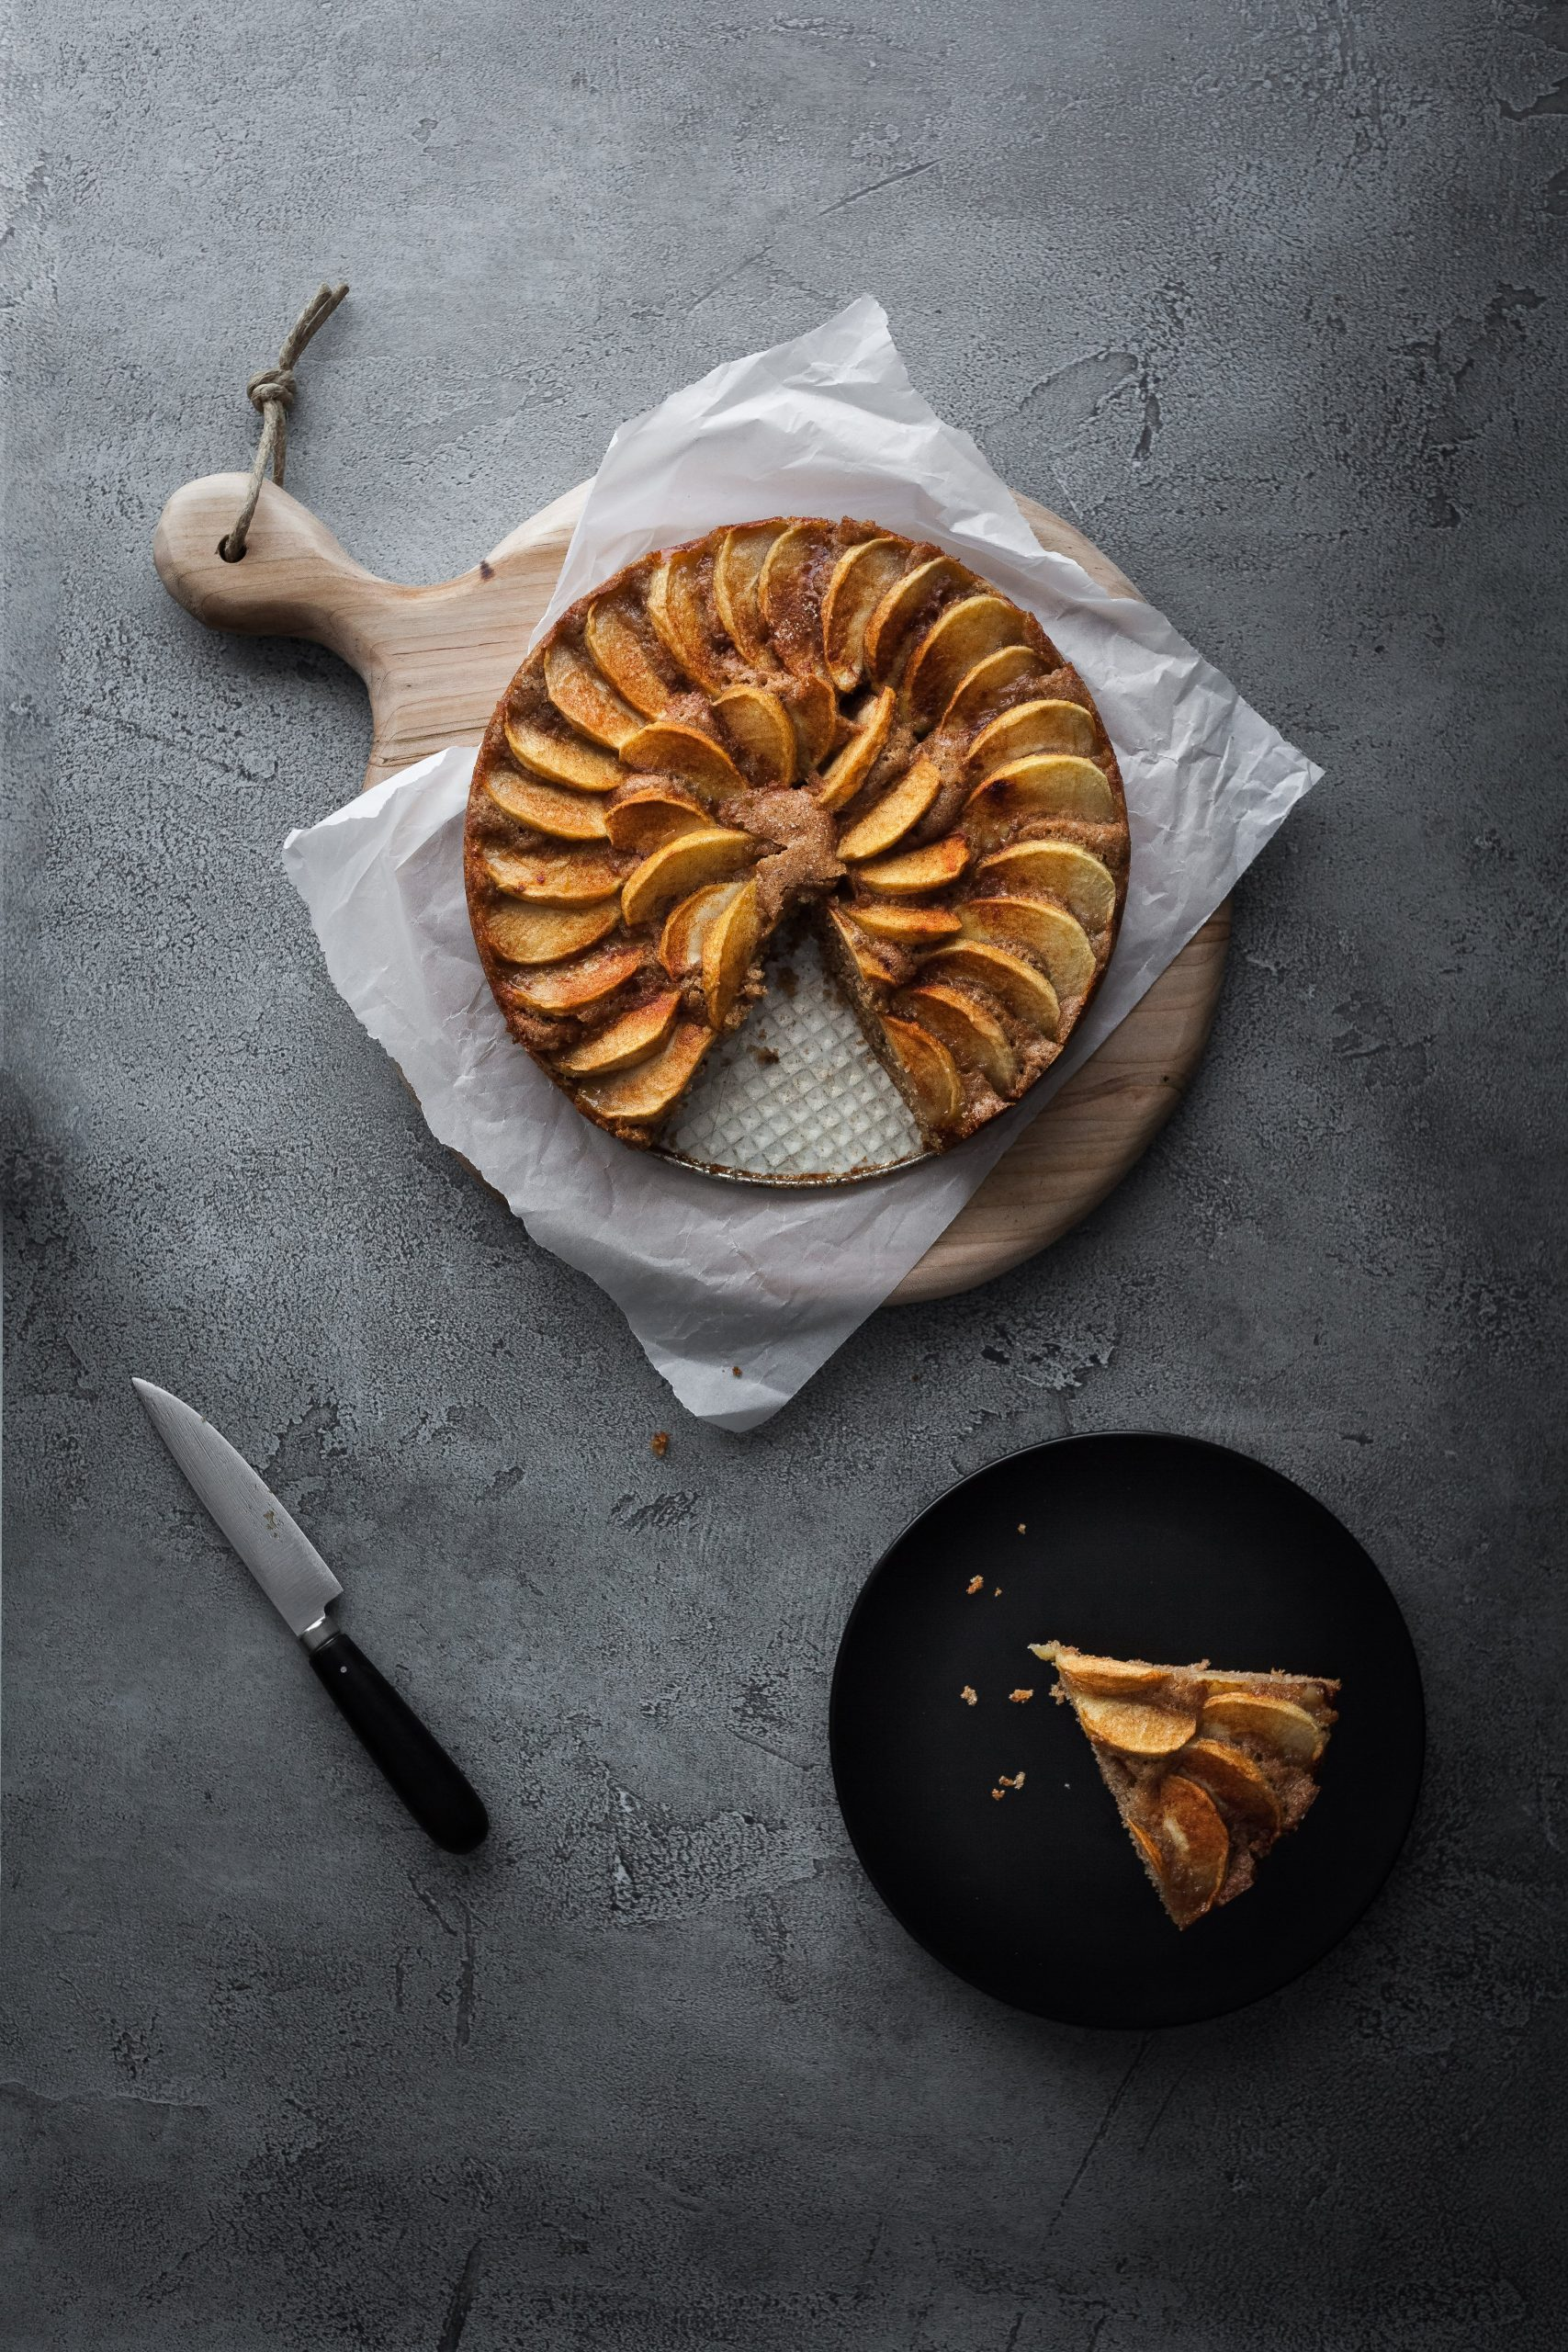 an overhead image of a german apple cake with a slice on a black plate and aknife off to the side.